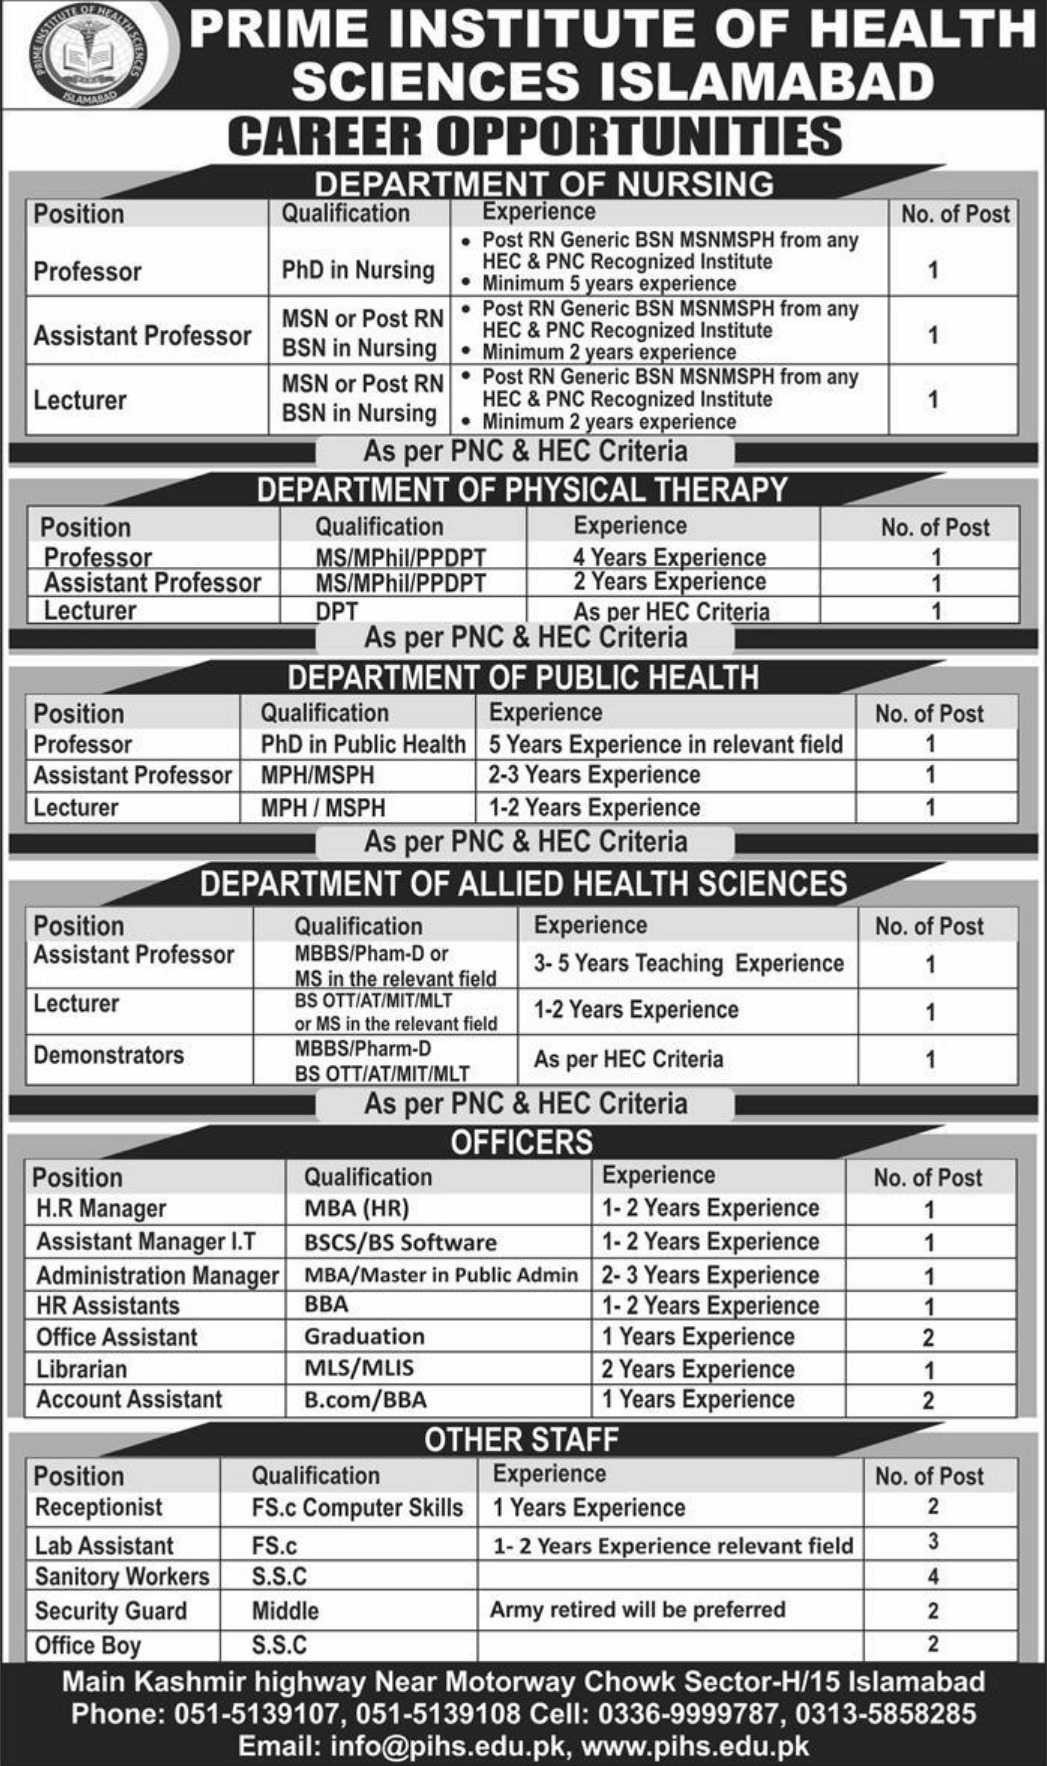 Prime Institute of Health Sciences Islamabad Jobs 2020